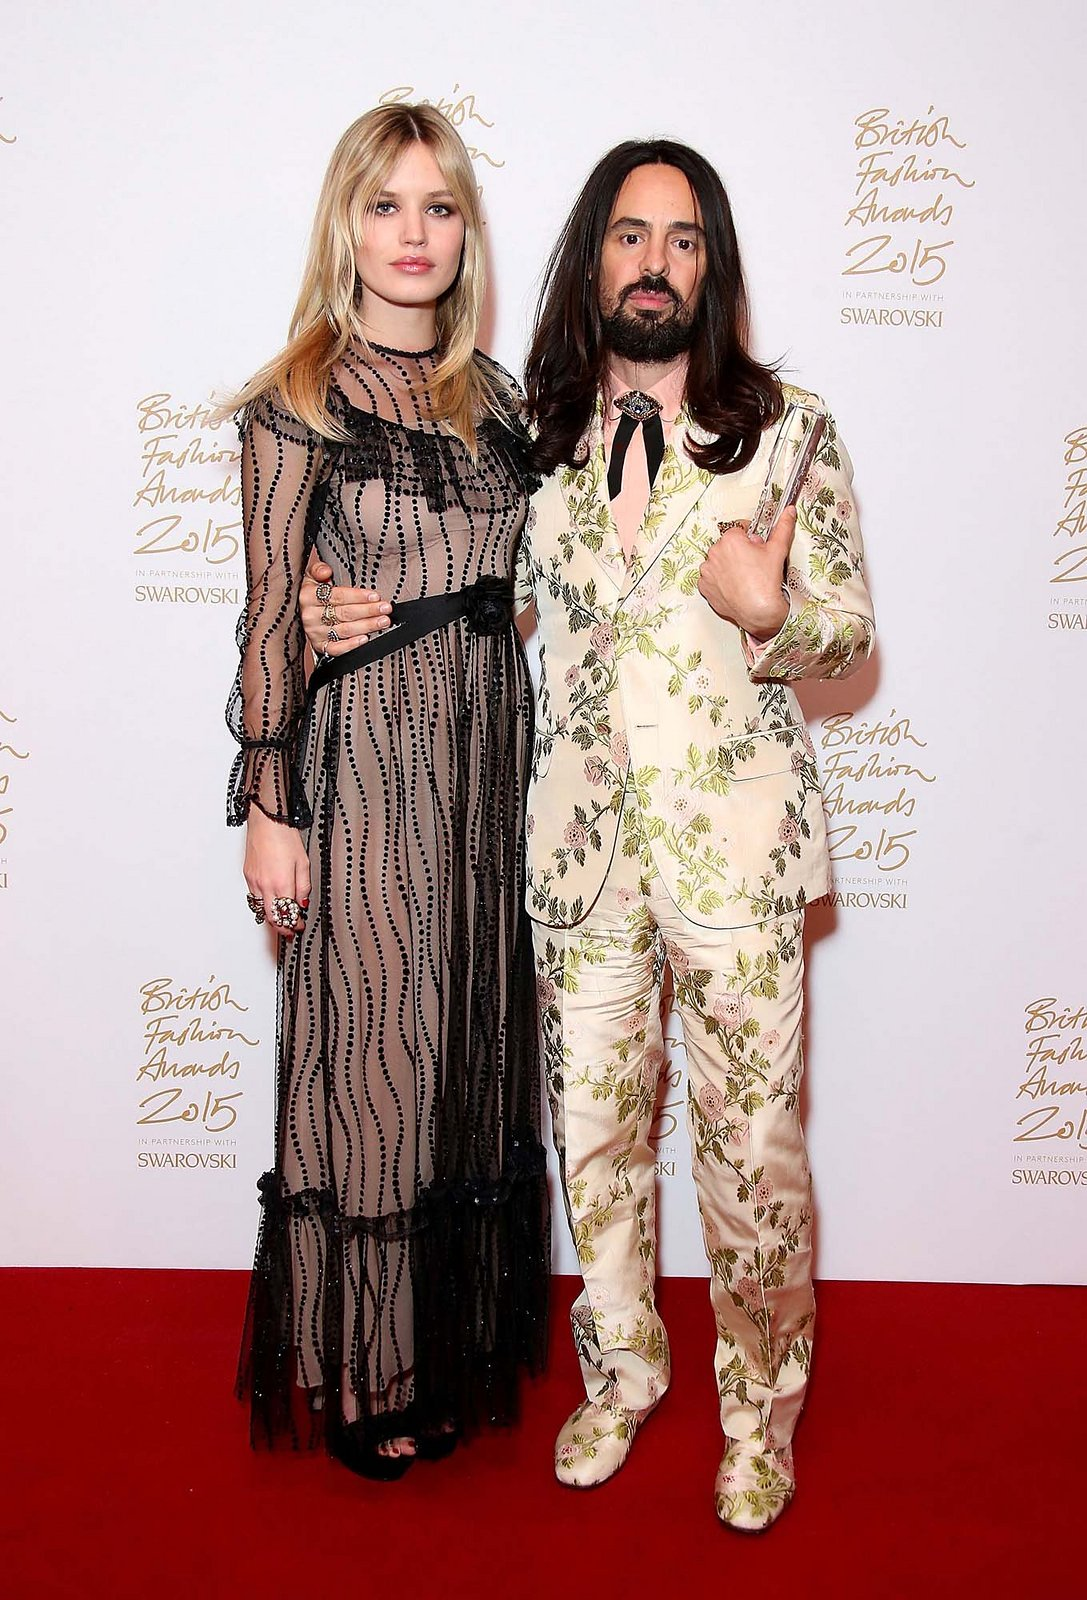 Georgia-May-Jagger-Alessandro-Michele-Gucci-at-the-British-Fashion-Awards-2015-in-partnership-with-Swarovski-Mike-Marsland-British-Fashion-Council